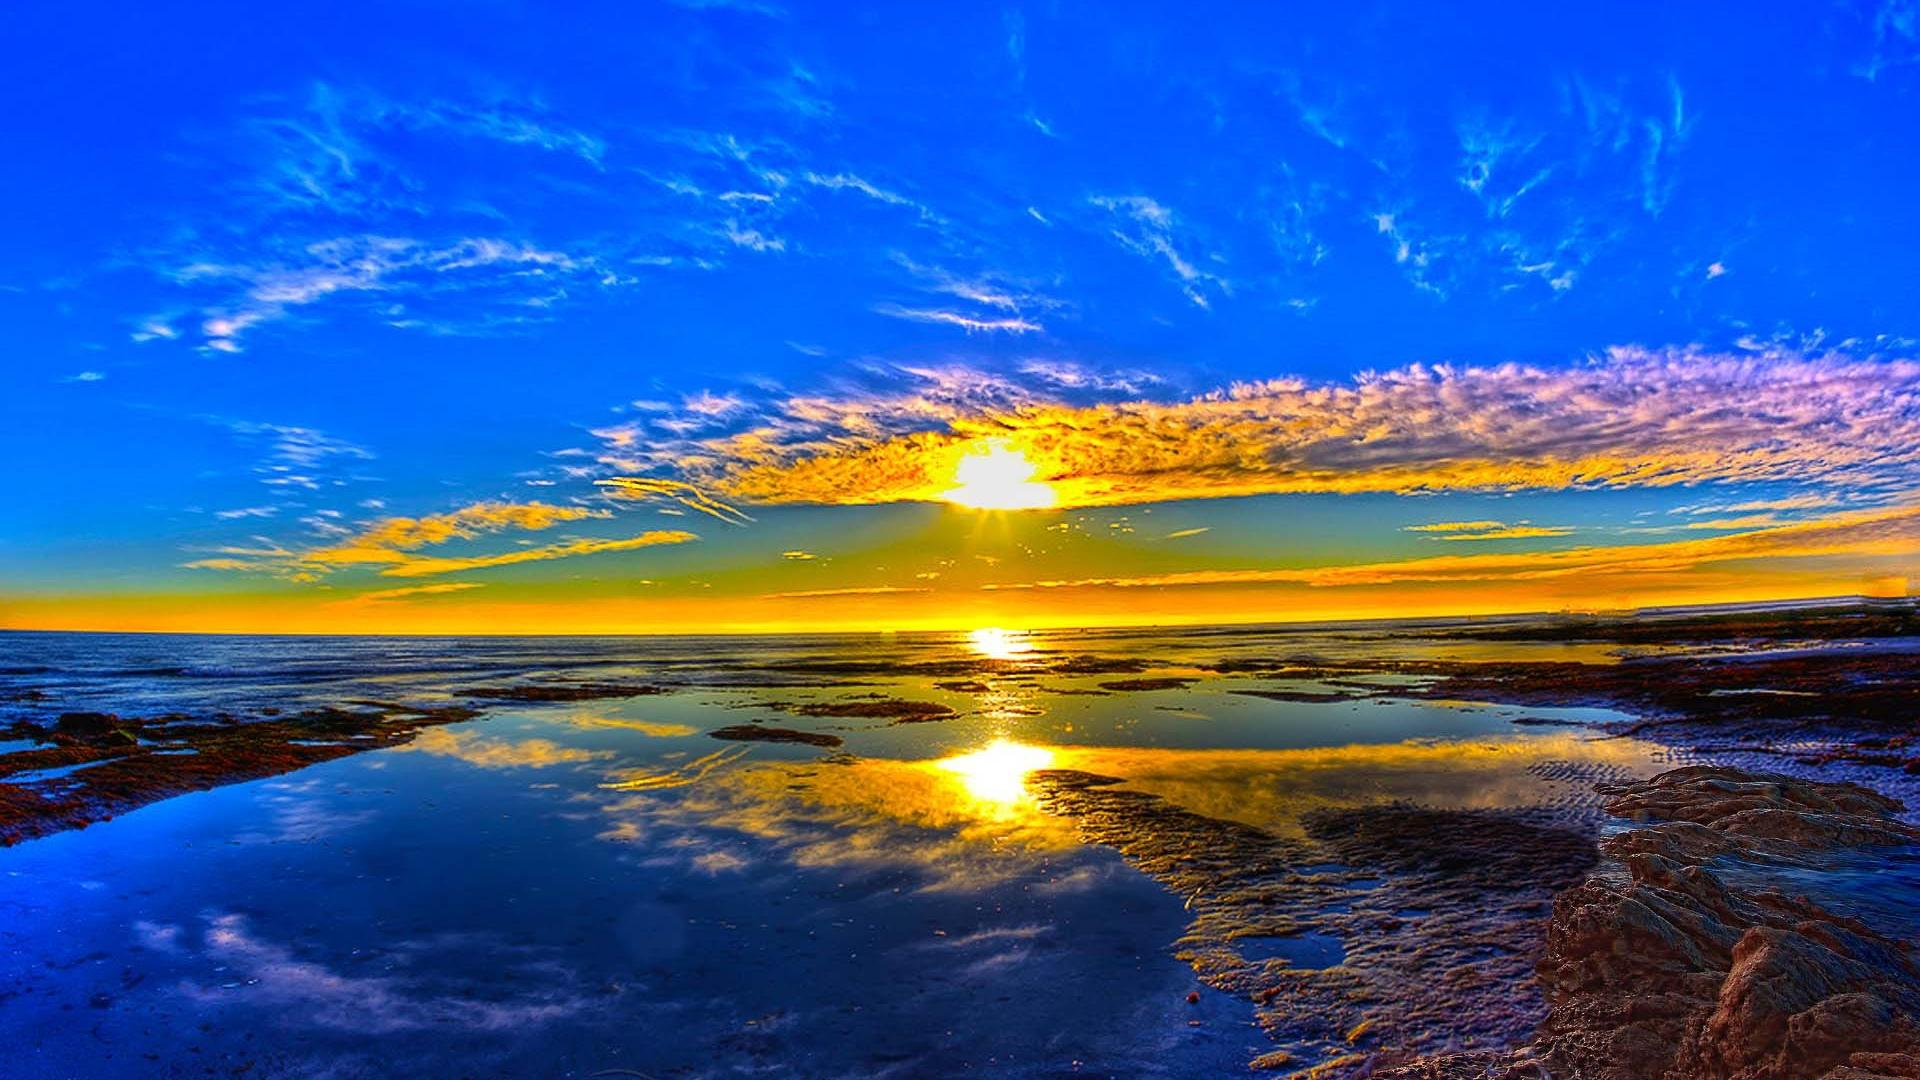 Sunrise Wallpaper · Sunrise Wallpaper · Sunrise Wallpaper